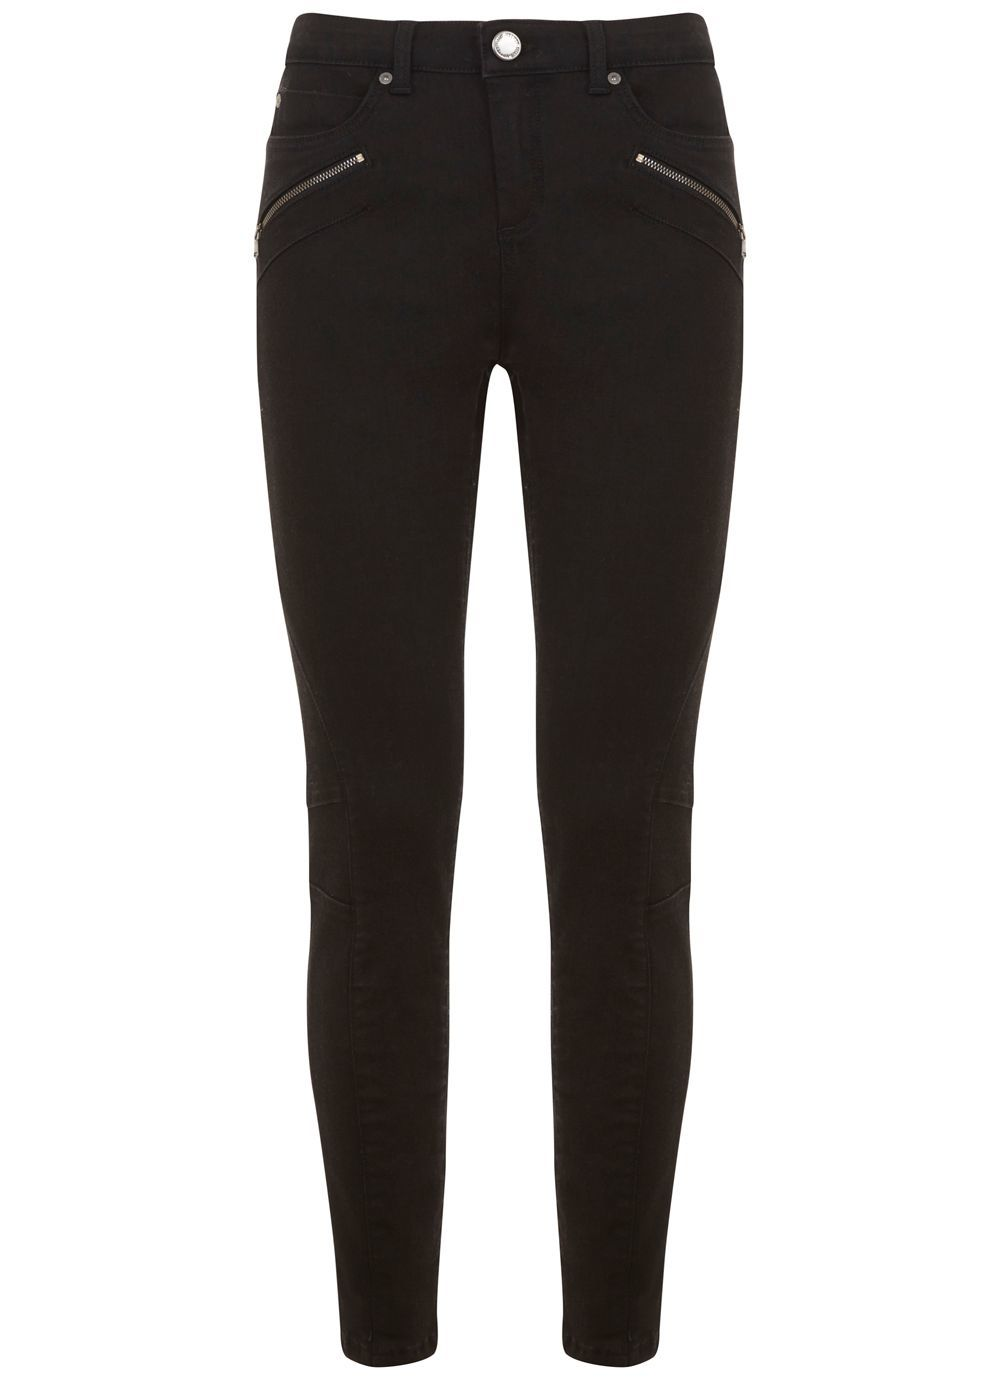 Darby Black Biker Skinny Jean, Black - style: skinny leg; length: standard; pattern: plain; waist: high rise; pocket detail: traditional 5 pocket; predominant colour: black; occasions: casual, creative work; fibres: cotton - stretch; texture group: canvas/hessian; pattern type: fabric; season: a/w 2016; wardrobe: highlight